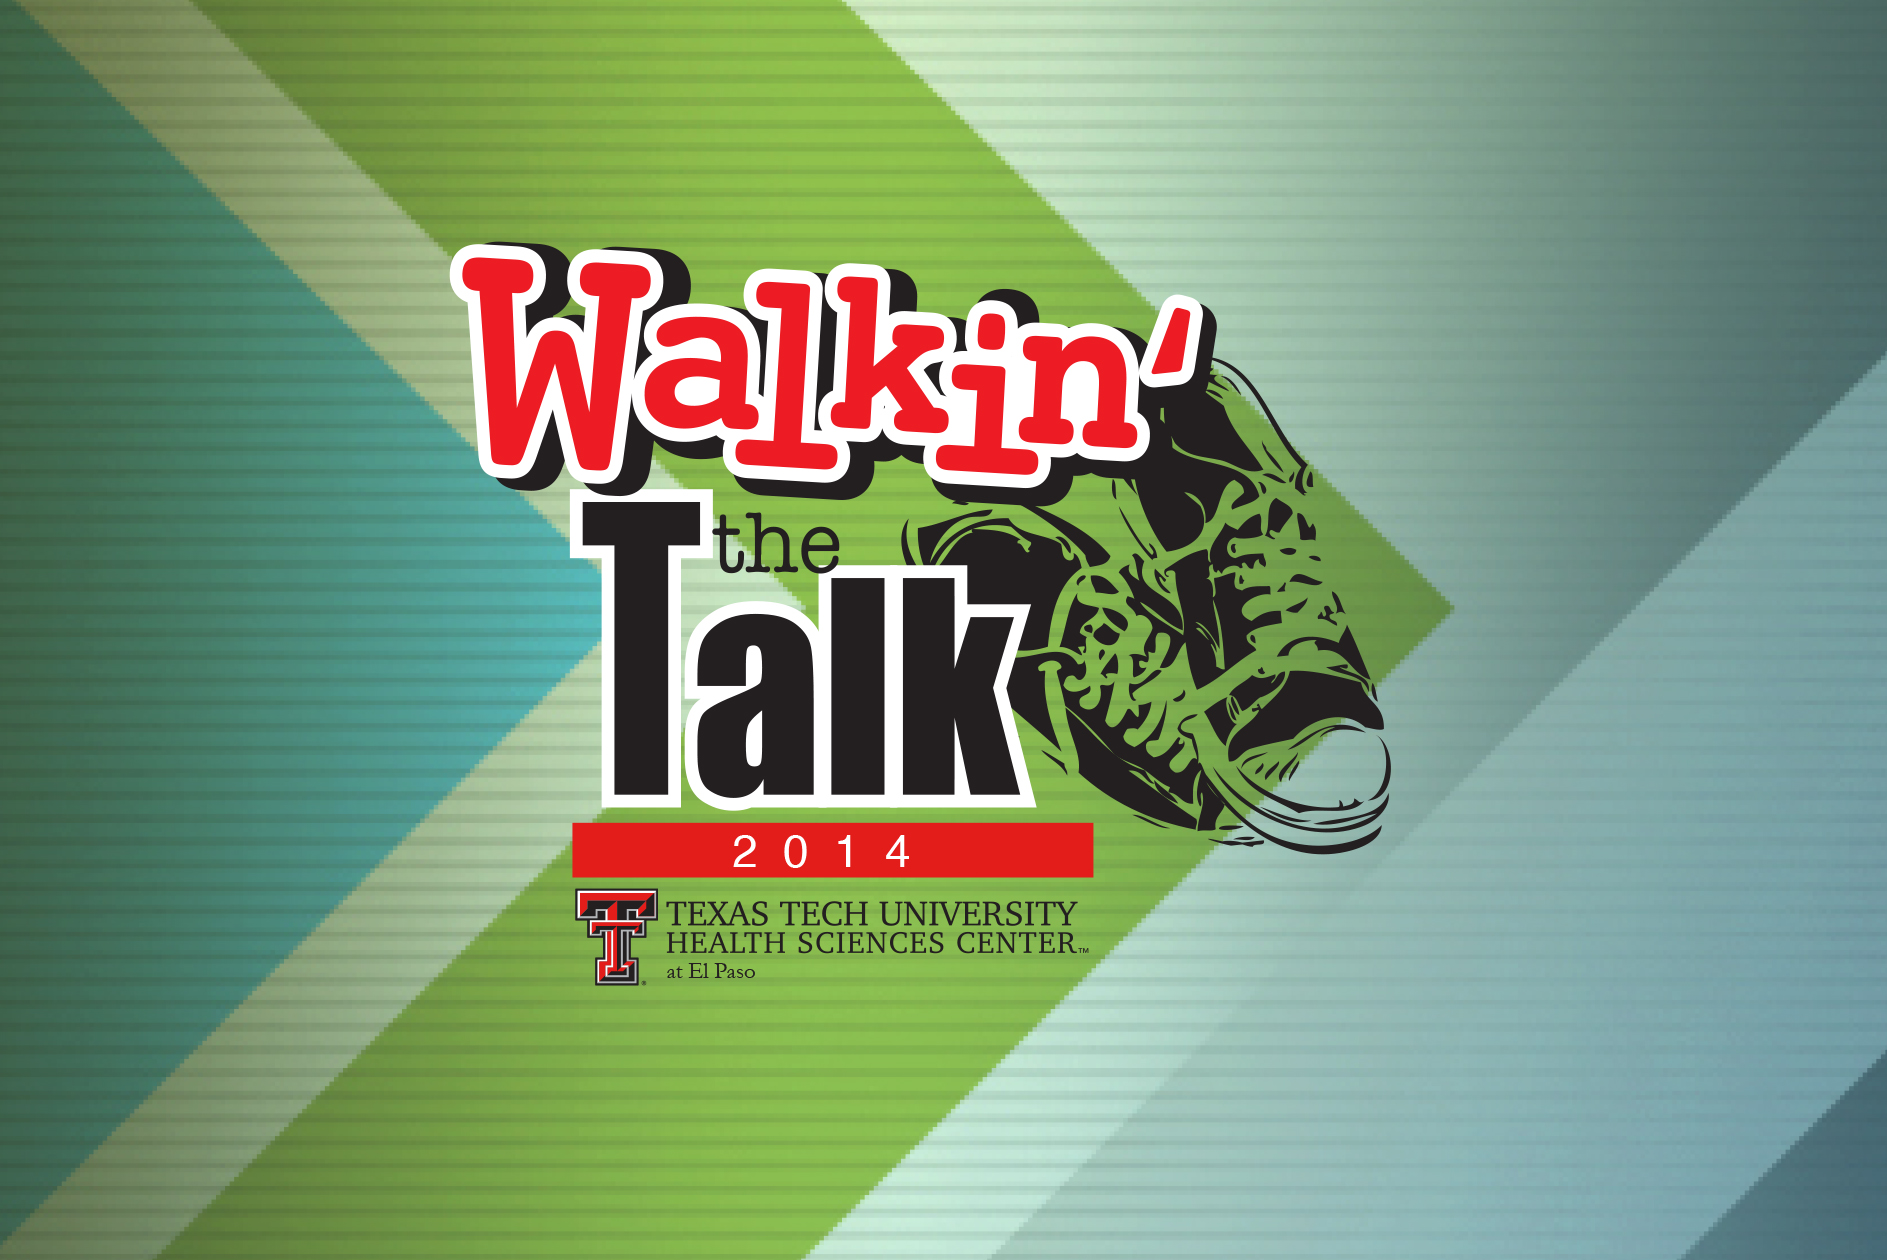 Walkin' the Talk October Lecture